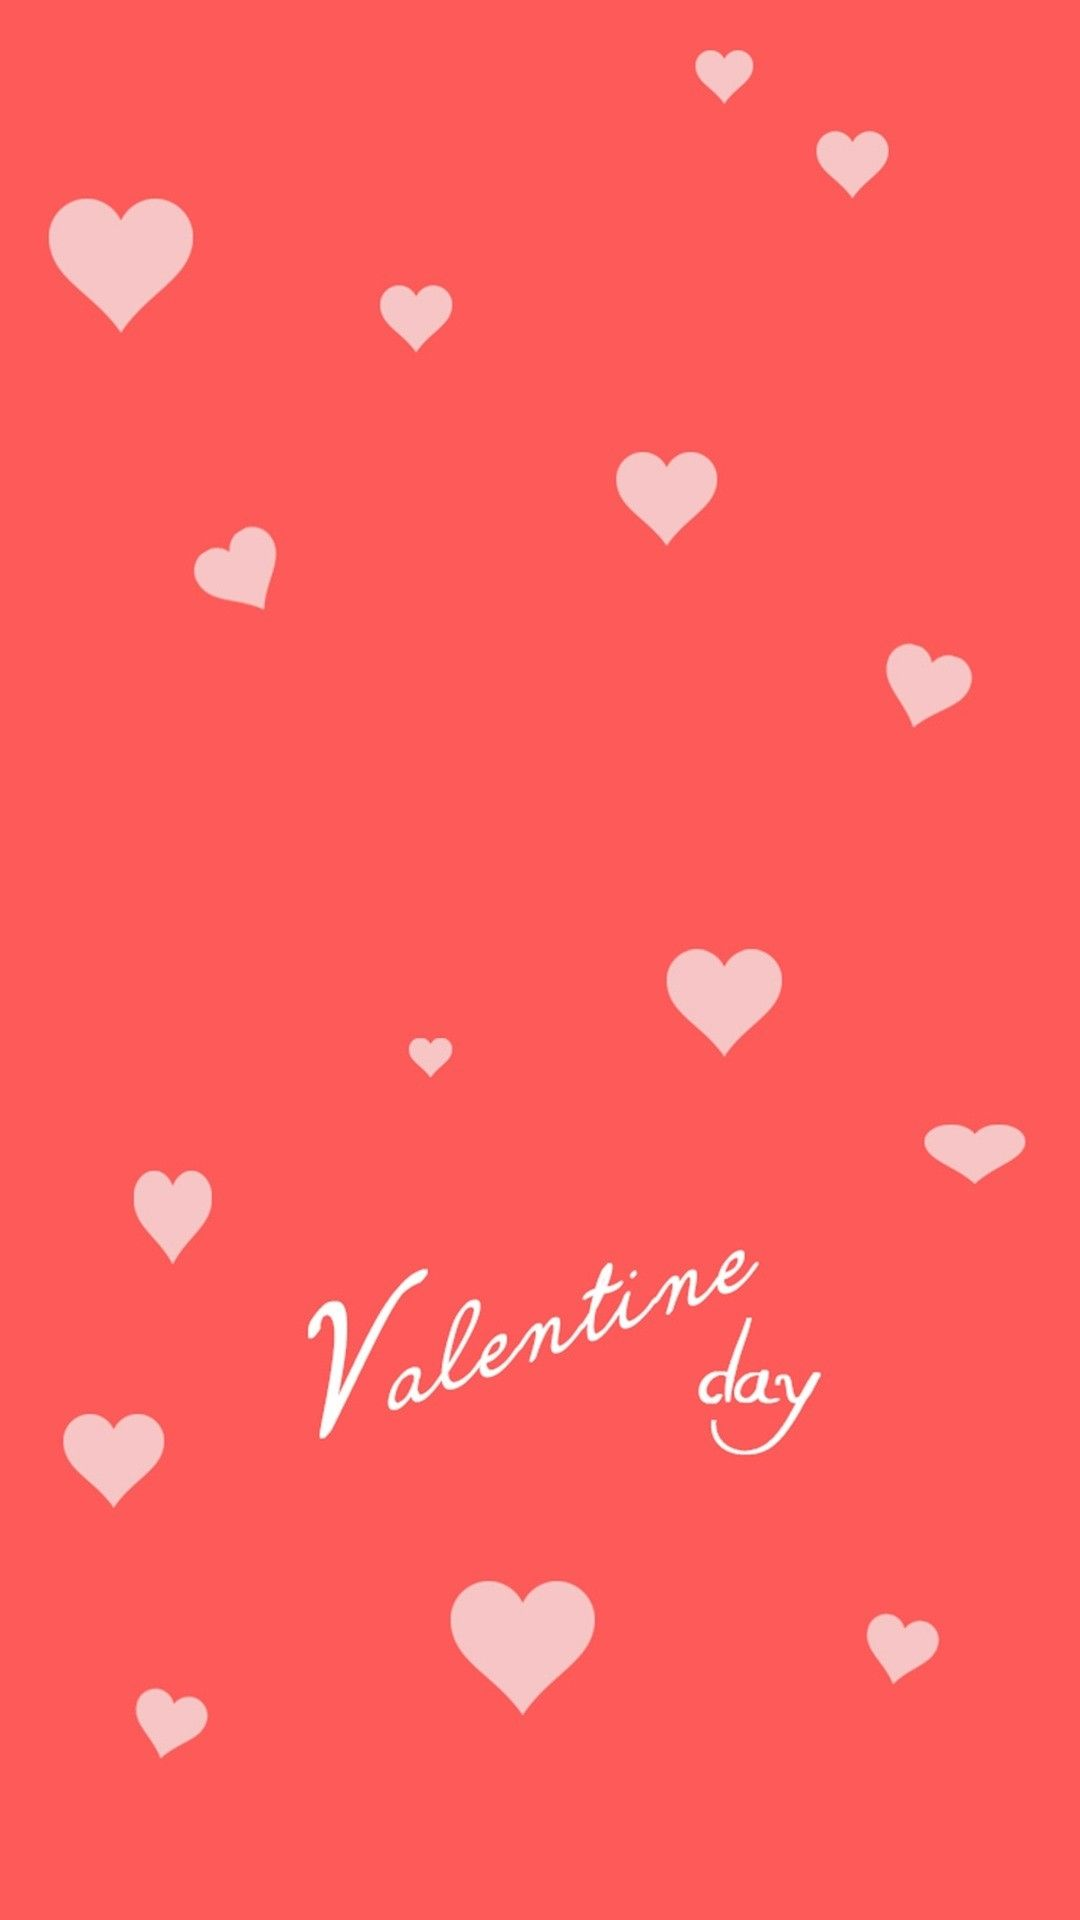 Valentine Day Iphone Wallpaper Background 2018 Iphone Wallpapers